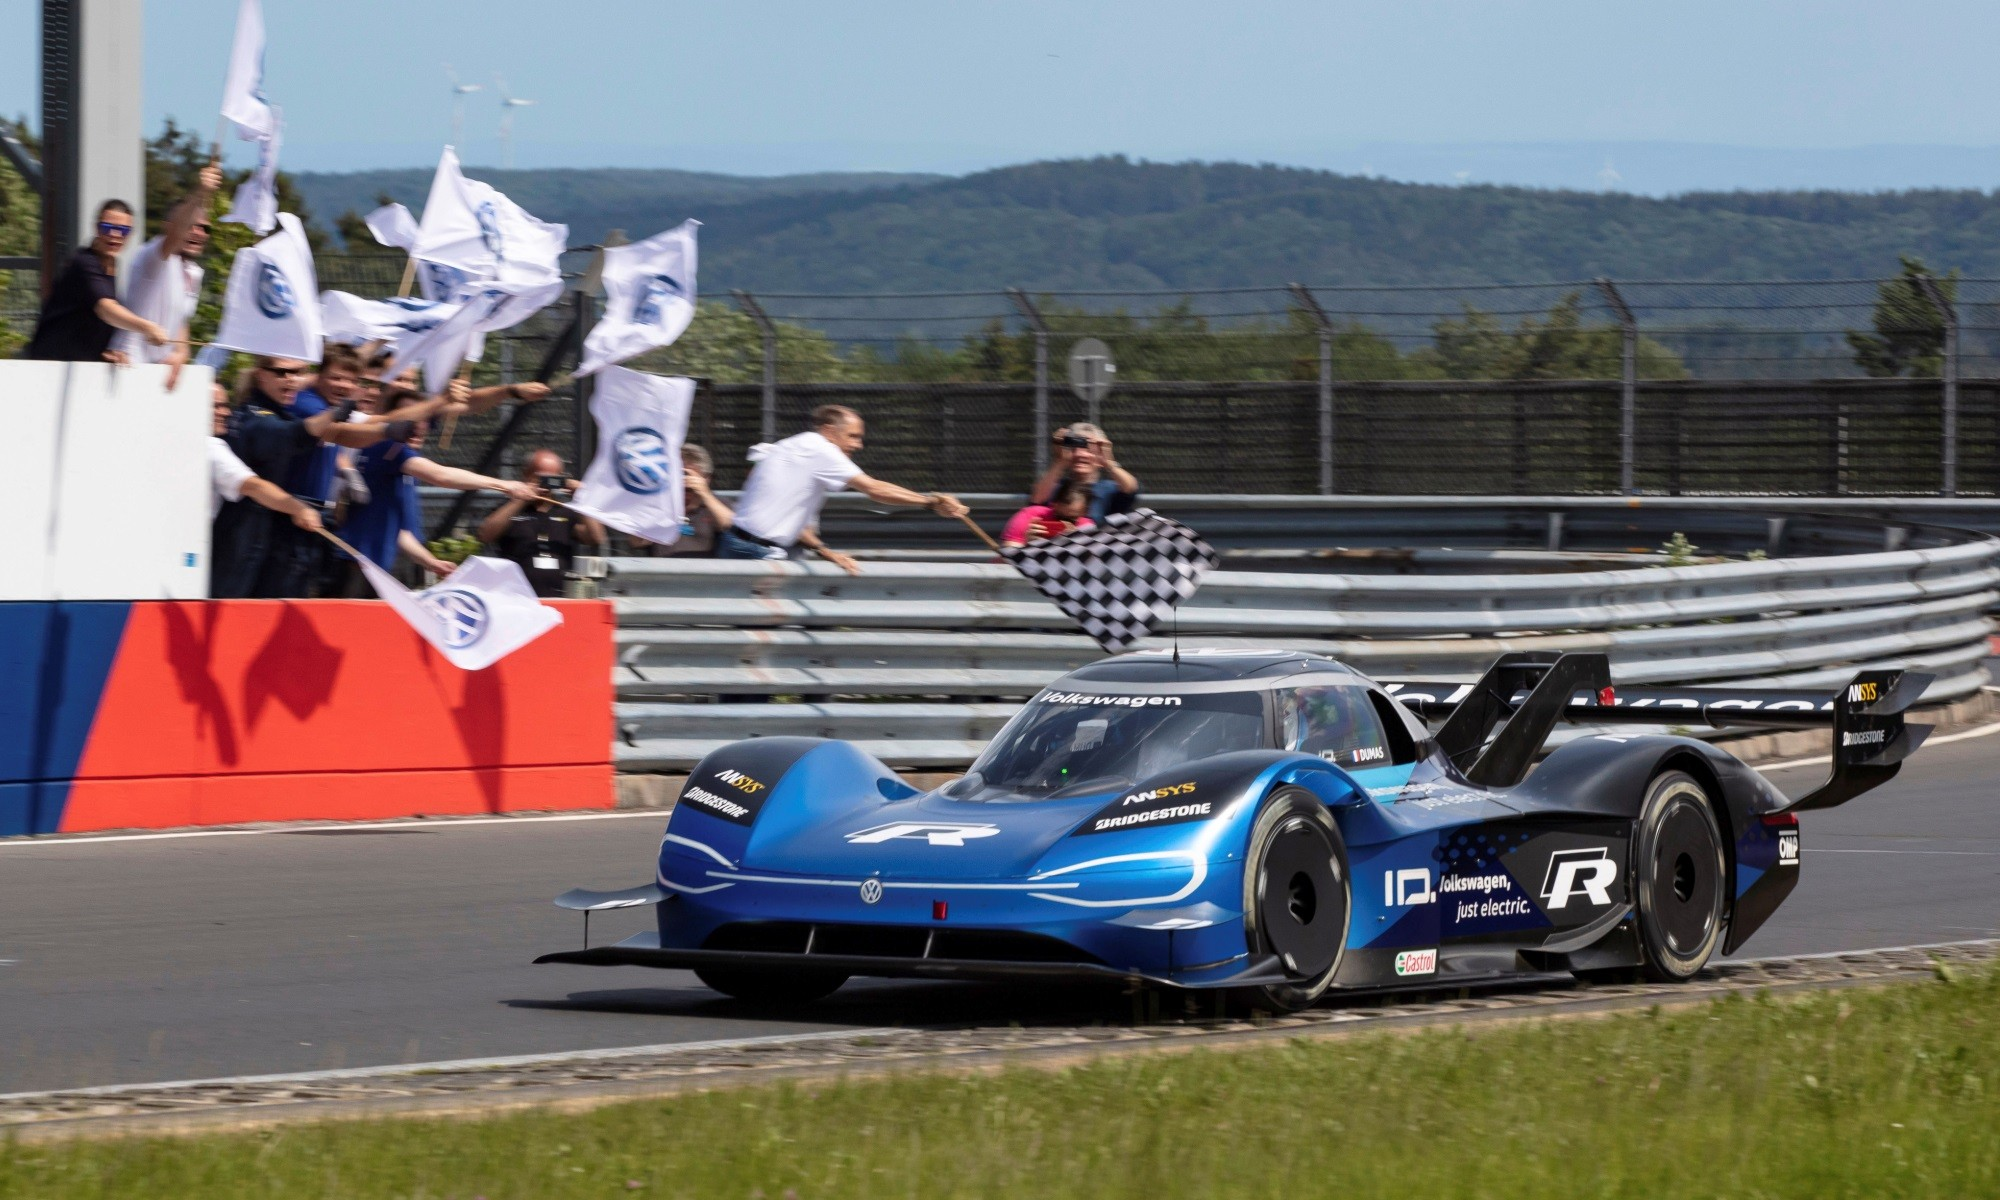 VW ID.R Nurburgring Record finish line